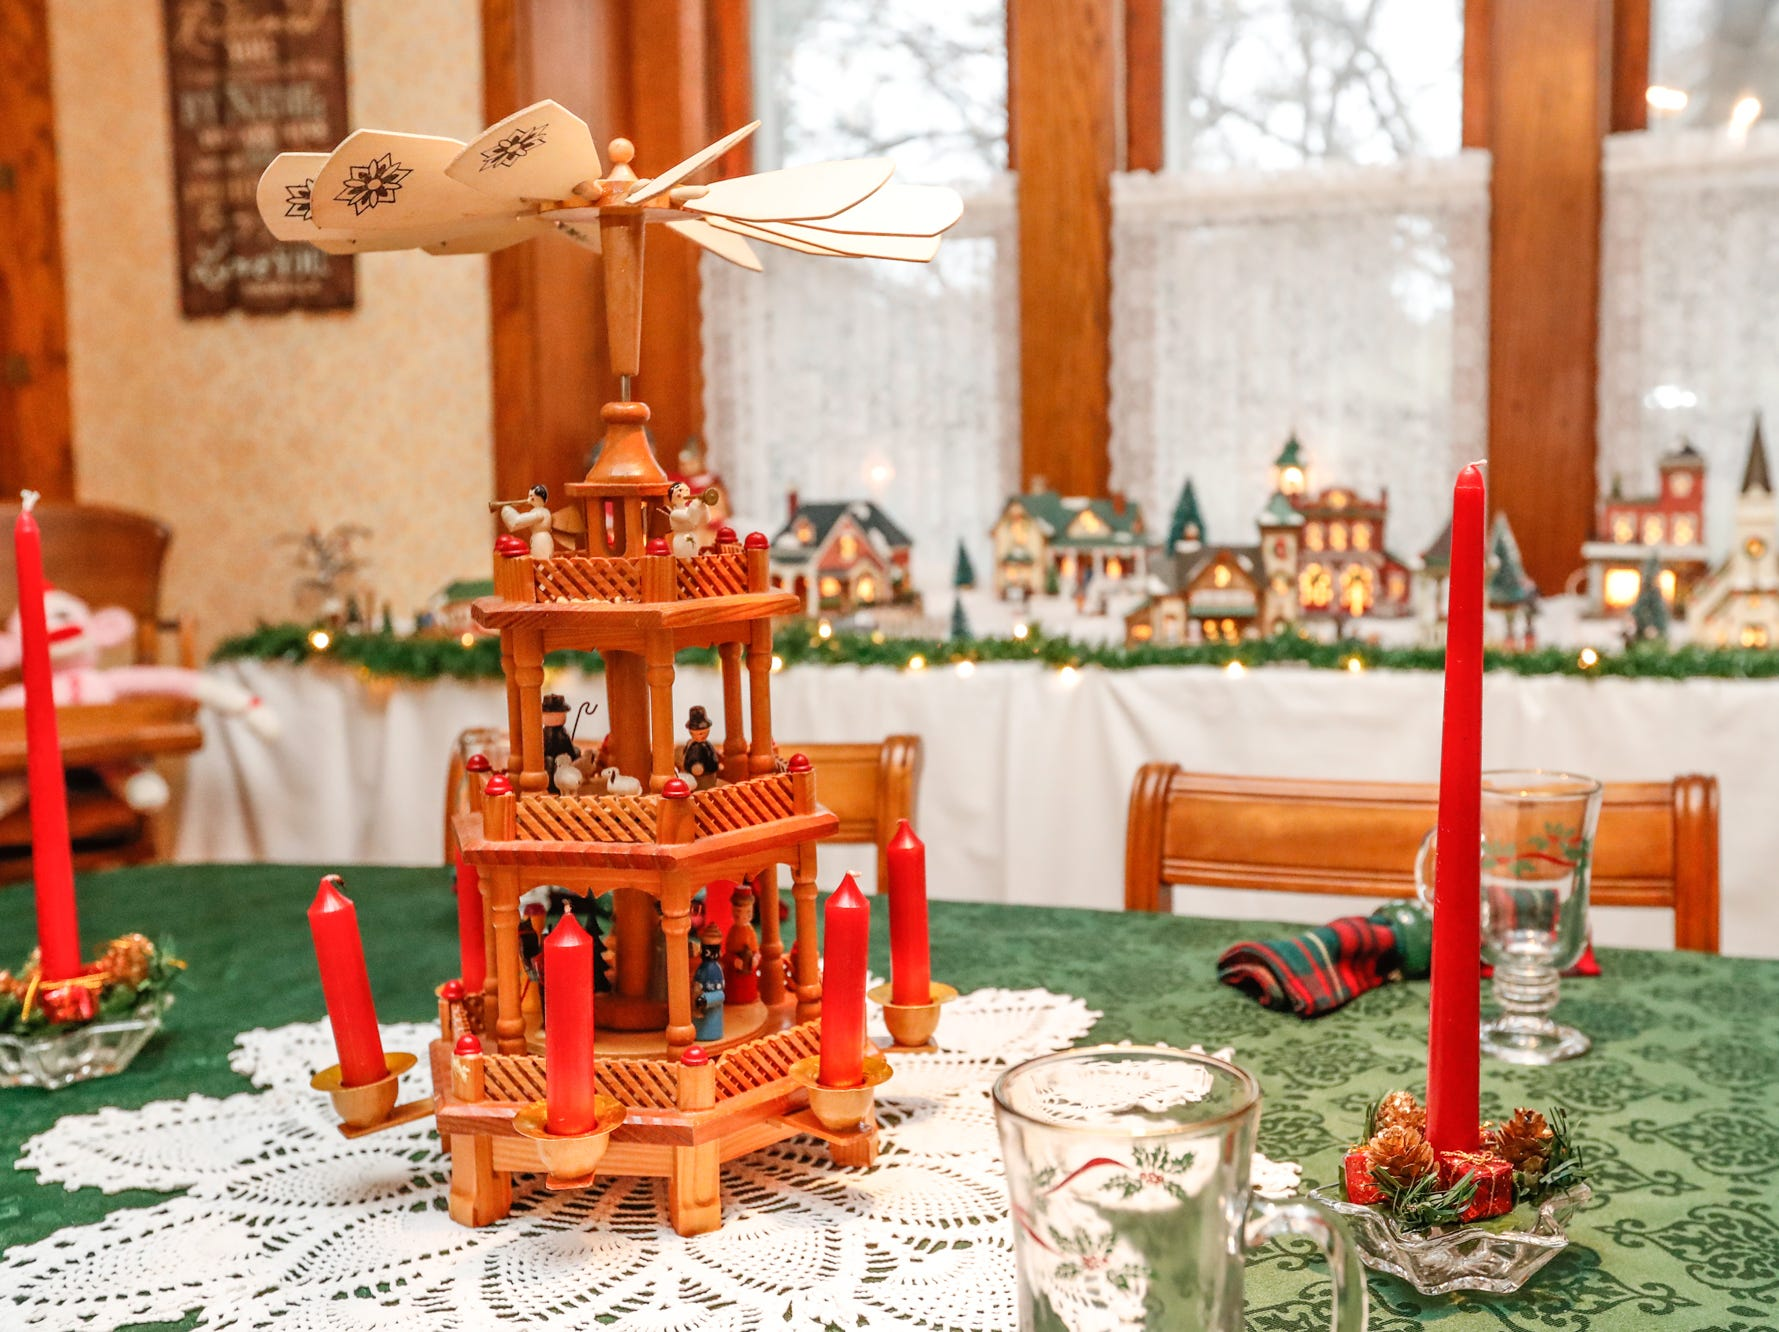 A candle powered windmill decorates the dining room in the 1903 home belonging to Ruth and Russell Schwartz, during the Carmel Clay Historical Society Holiday Home Tour in Carmel Ind. on Saturday, Dec.1, 2018.